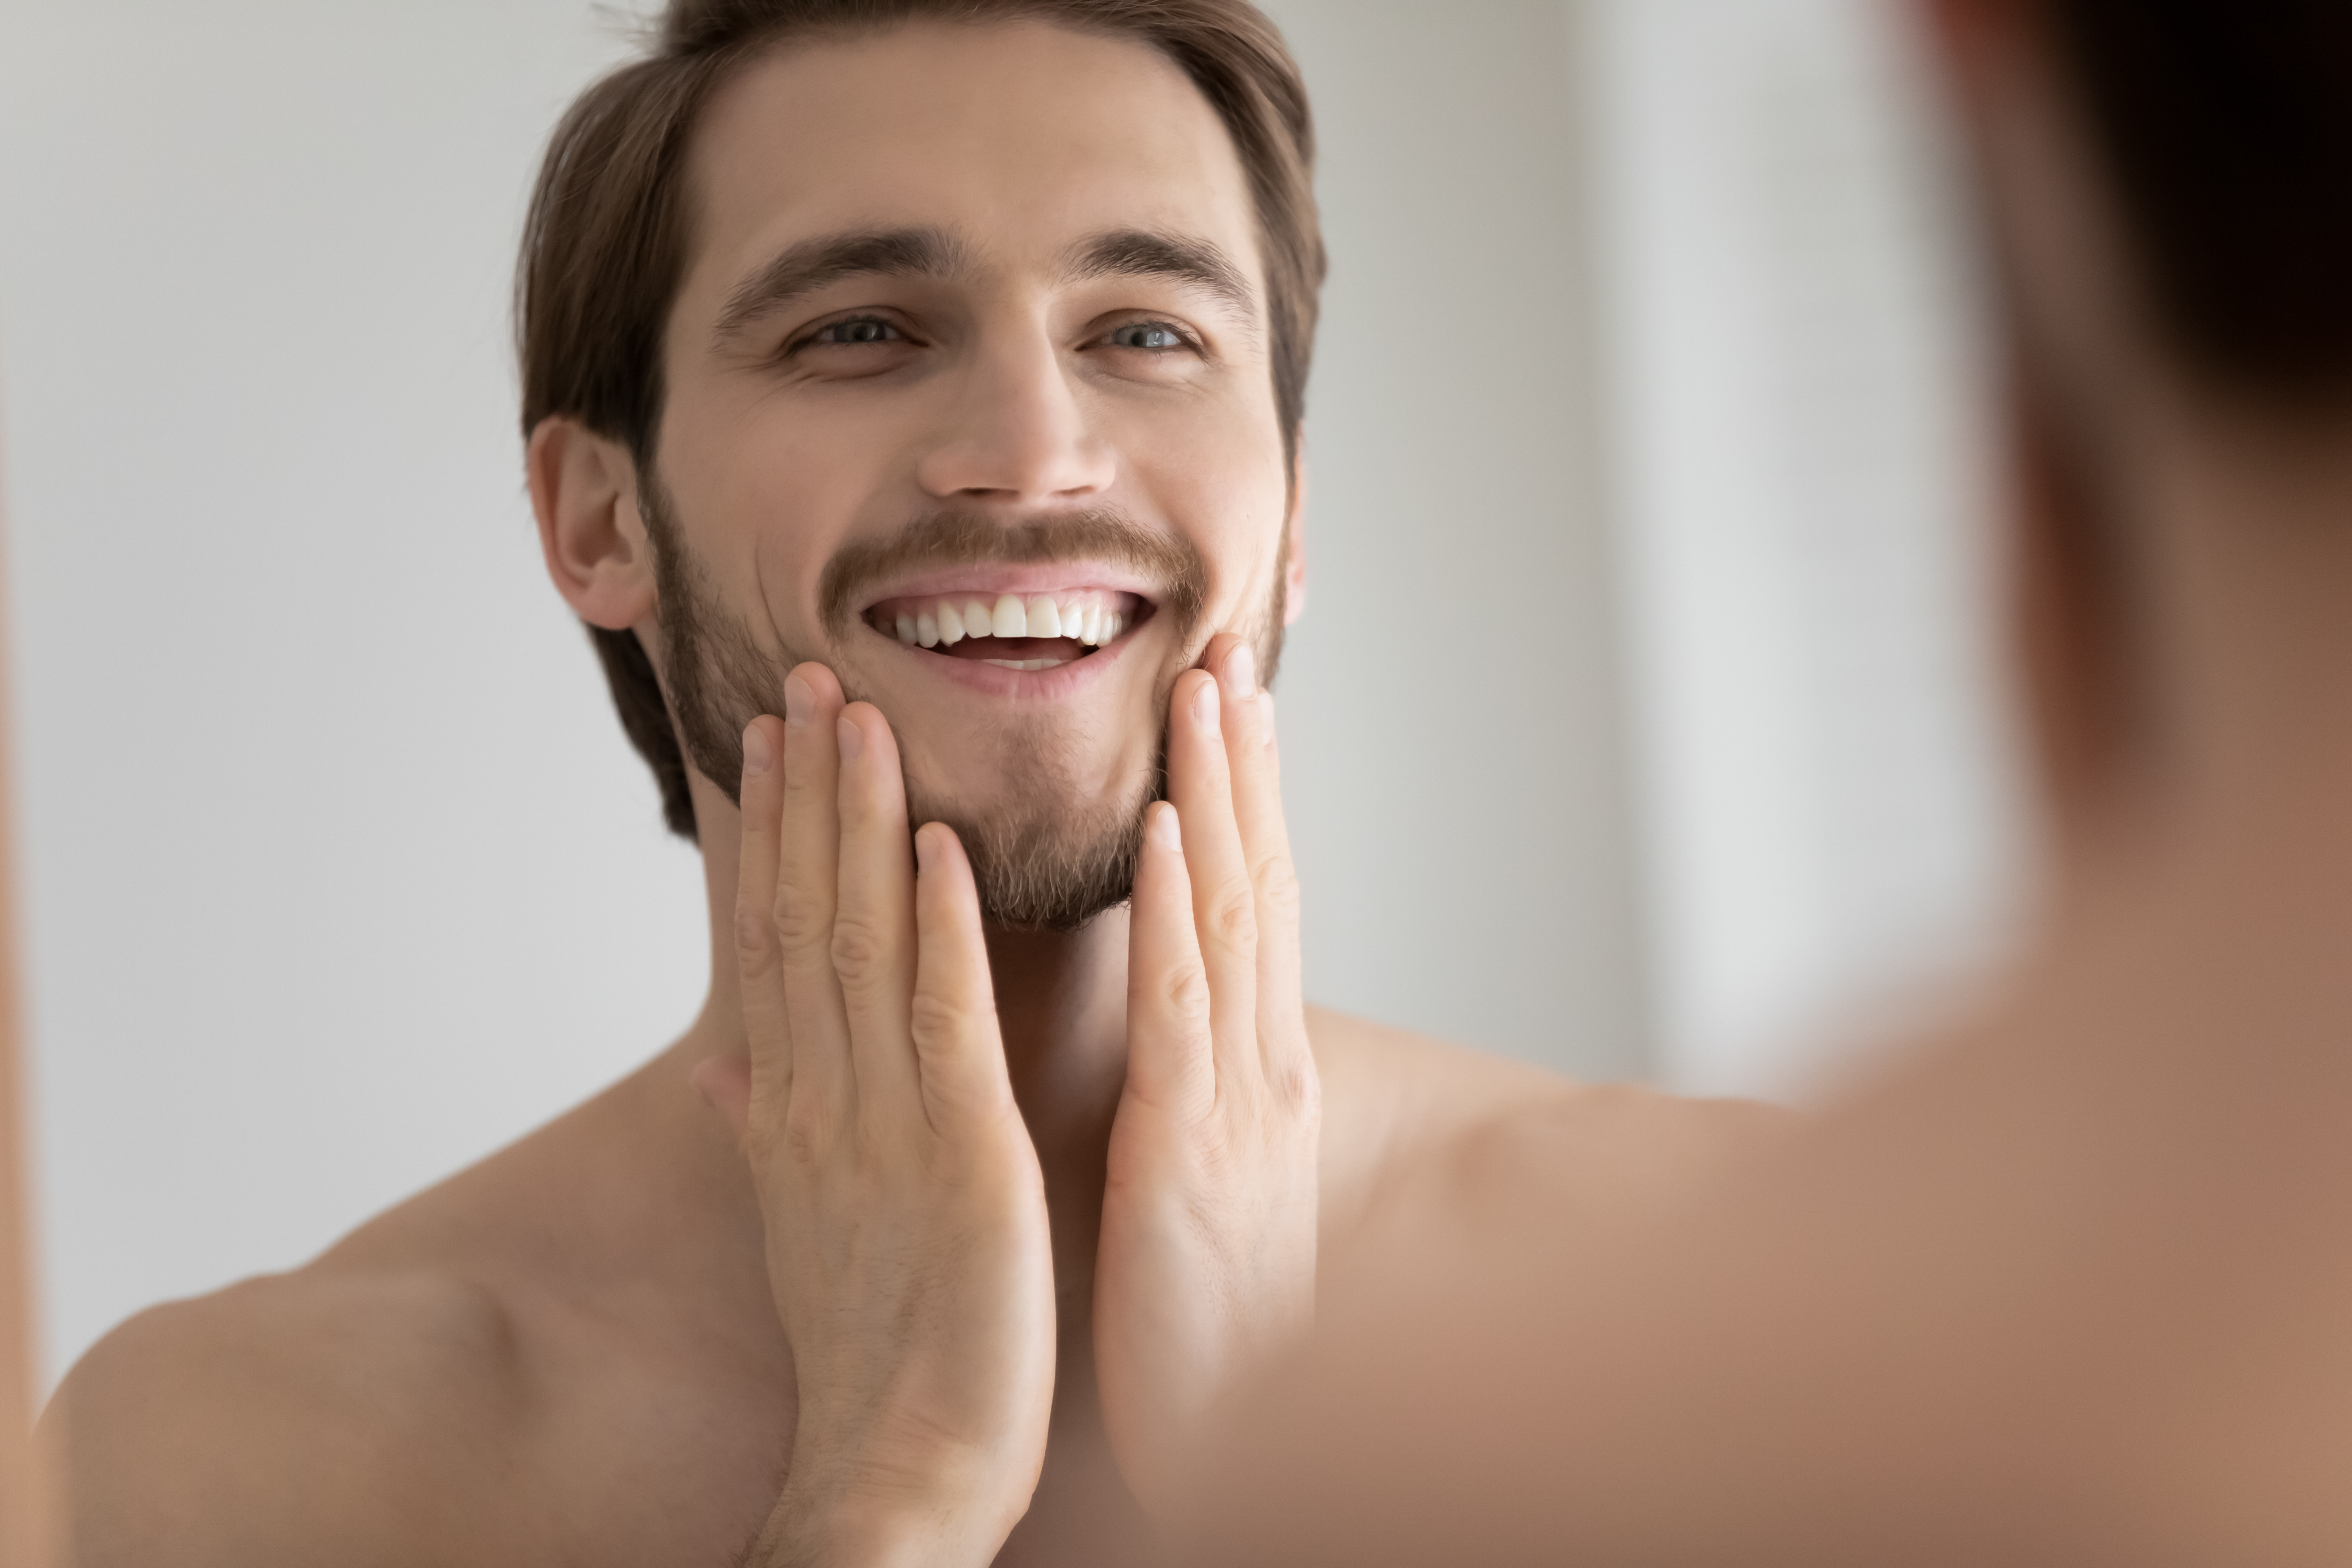 Smiling young Caucasian man look in mirror in bathroom touch healthy face skin after treatment or procedure, happy millennial male satisfied with beard or bristle after shaving, body hygiene concept